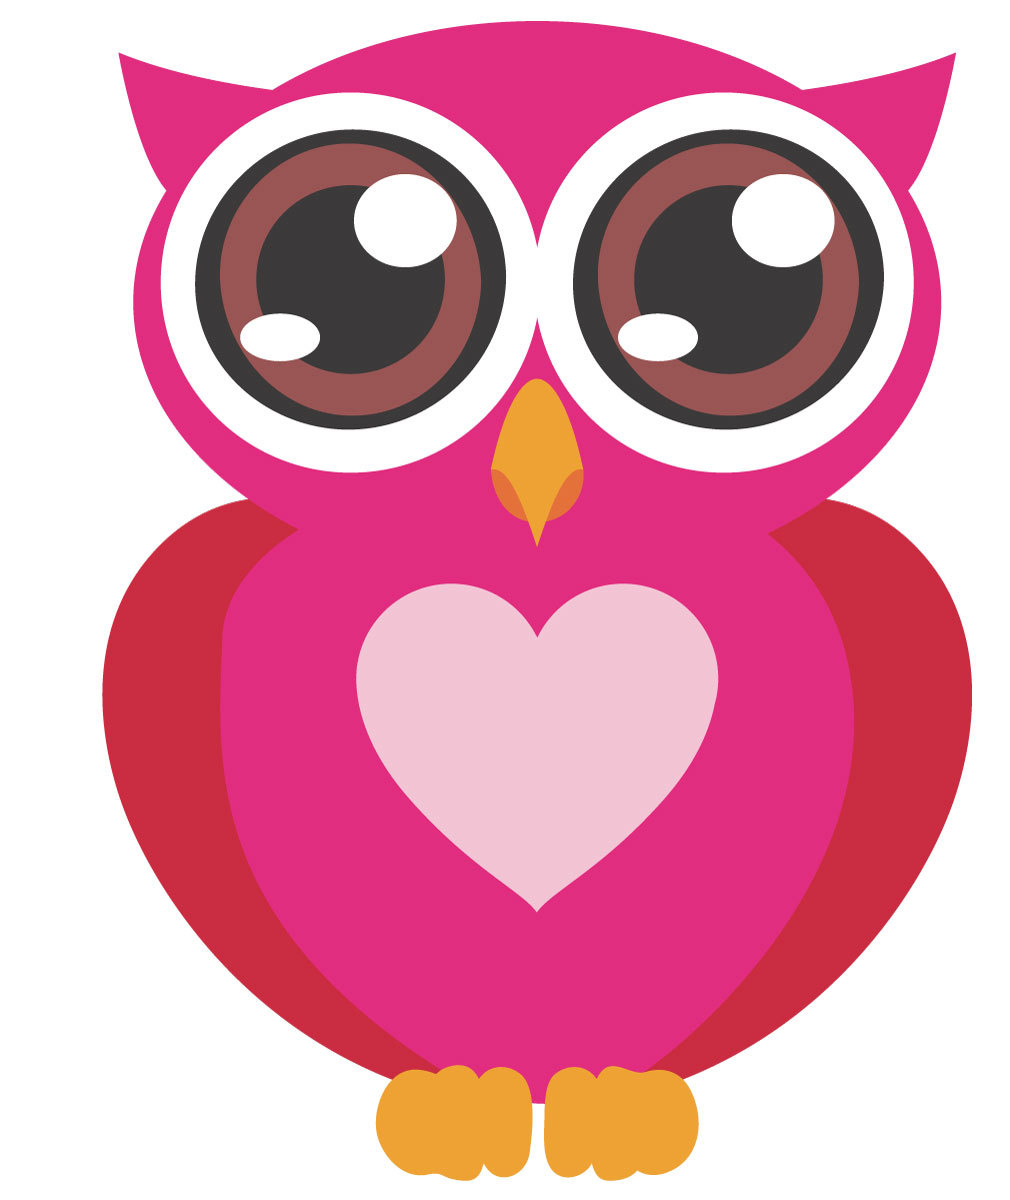 Blue Eyes clipart surprised eye On and 2 owl images